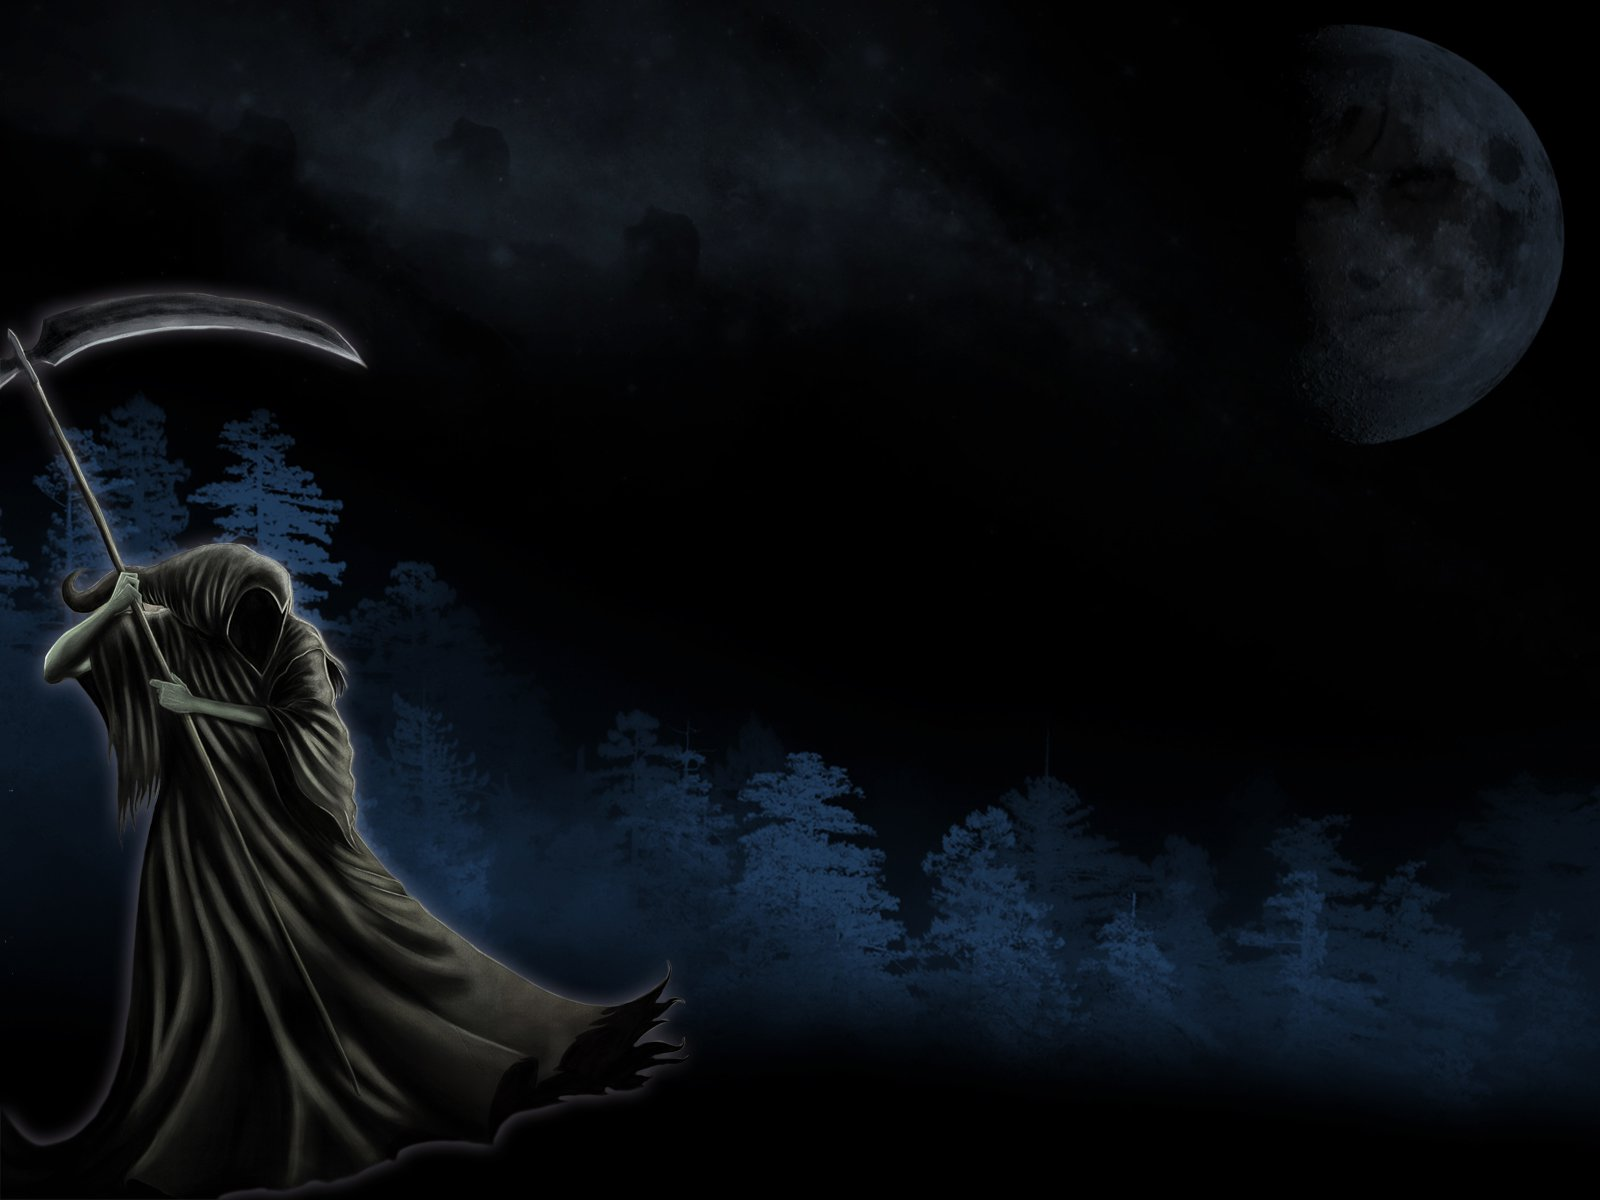 Dark horror grim reaper death art wallpaper 1600x1200 29490 1600x1200